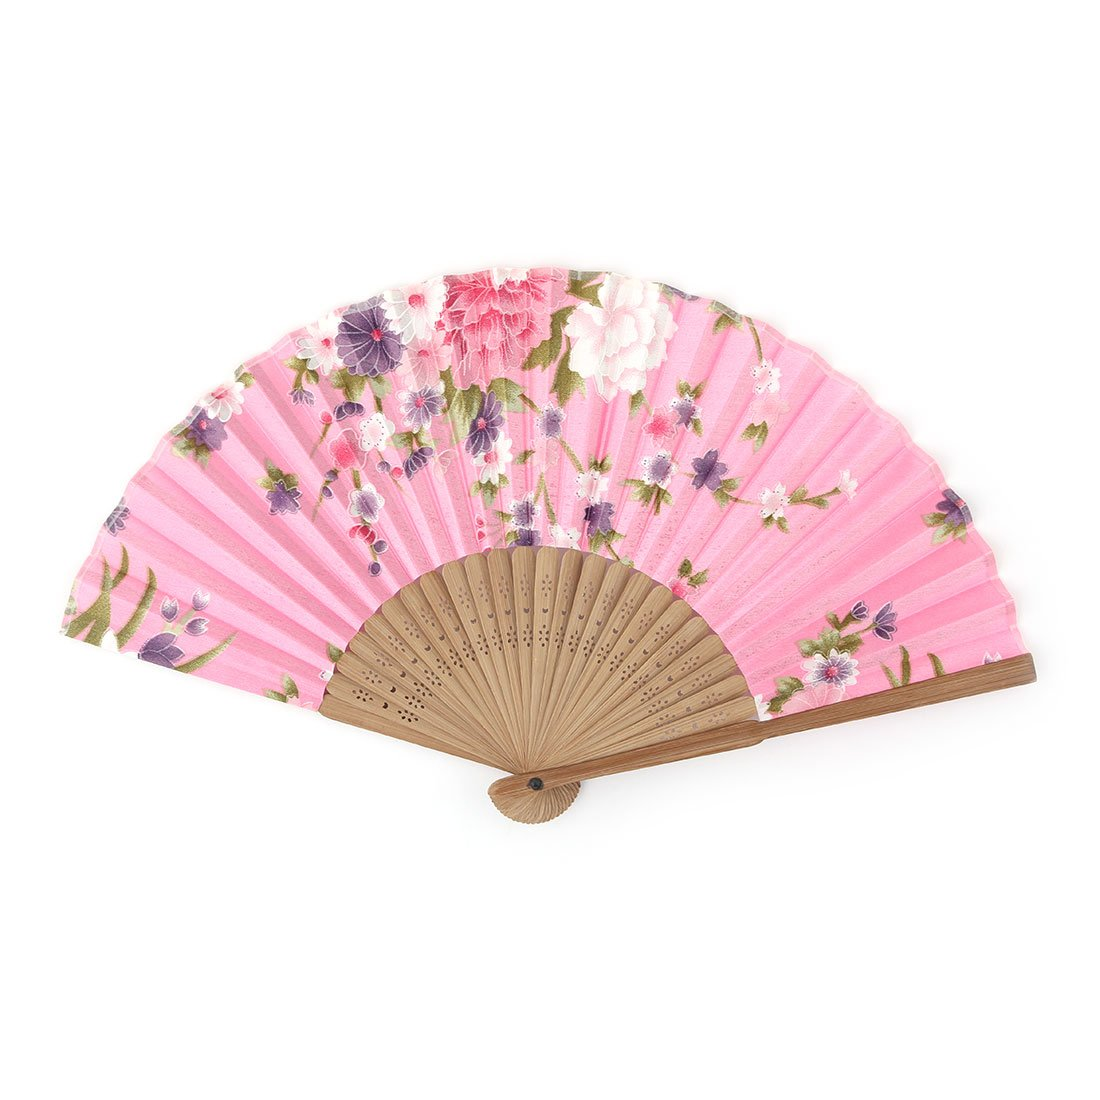 uxcell Bamboo Frame Peony Flower Printed Wedding Party Ornament Foldable Hand Fan a16092900ux0046